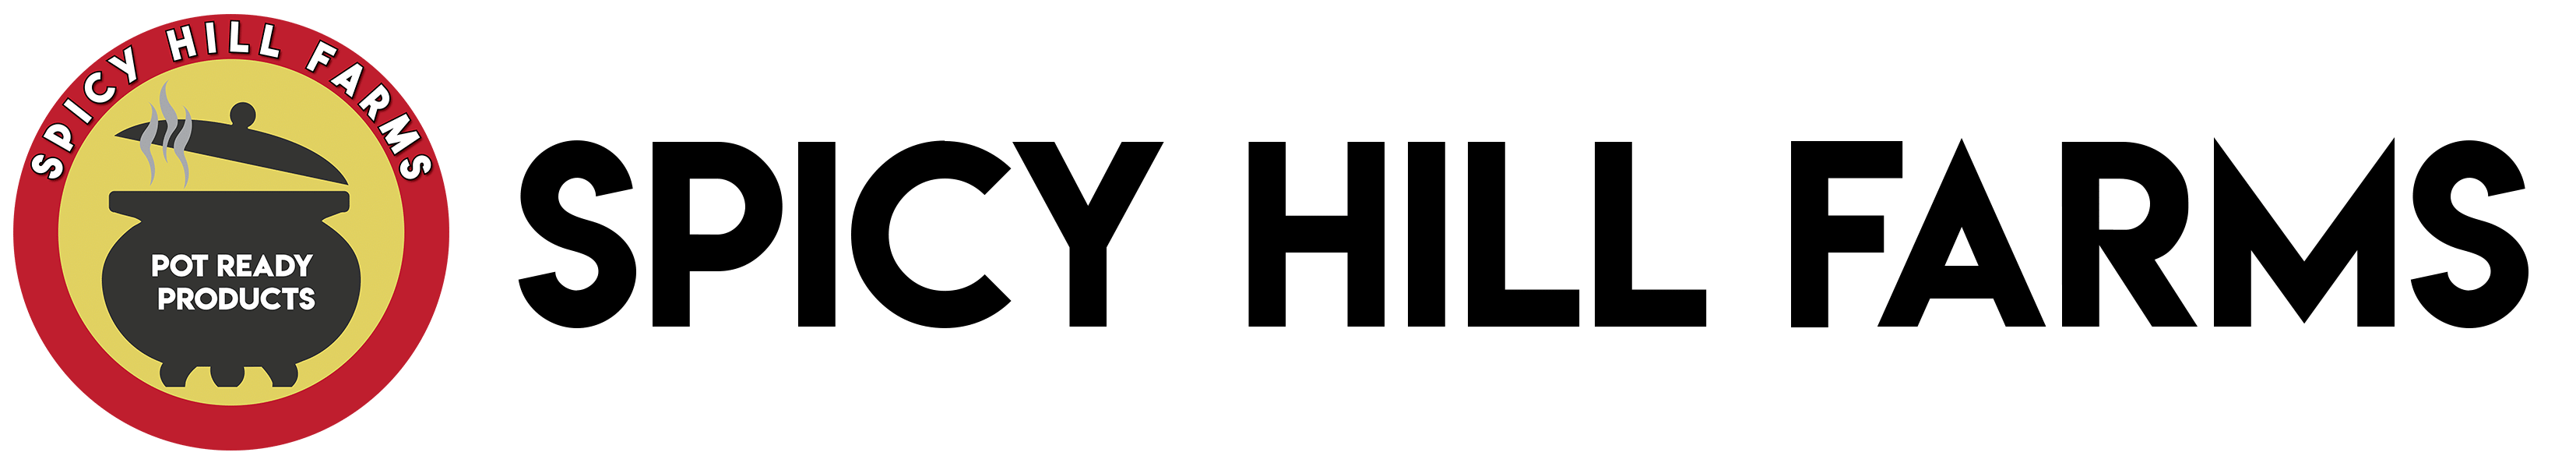 Spicy Hill Farms